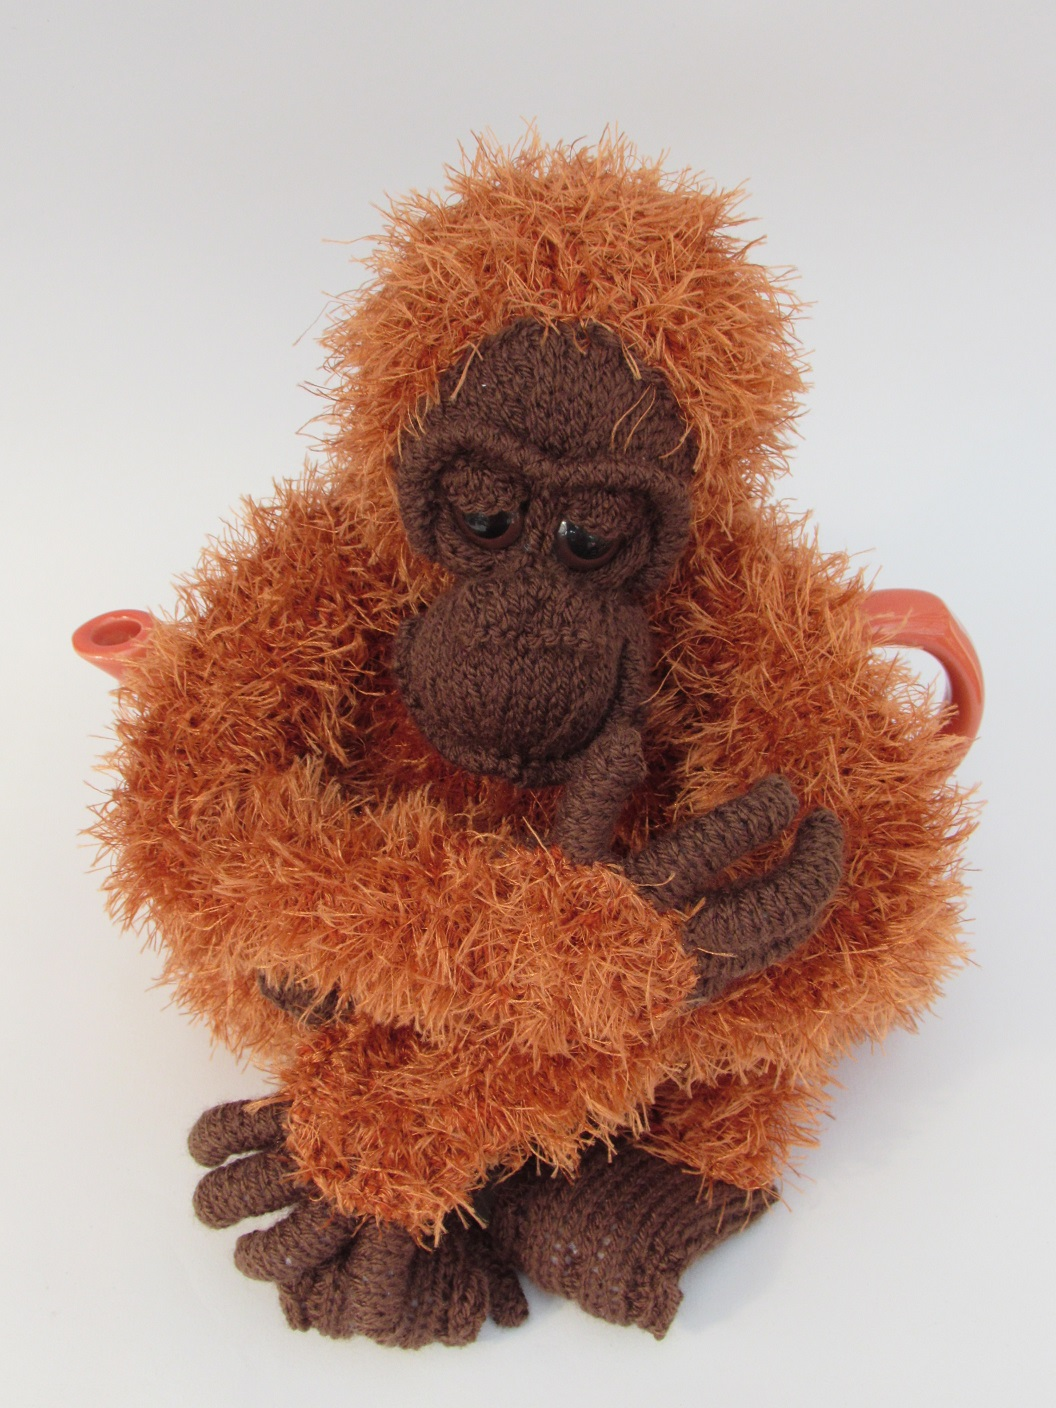 Orangutan knitting pattern